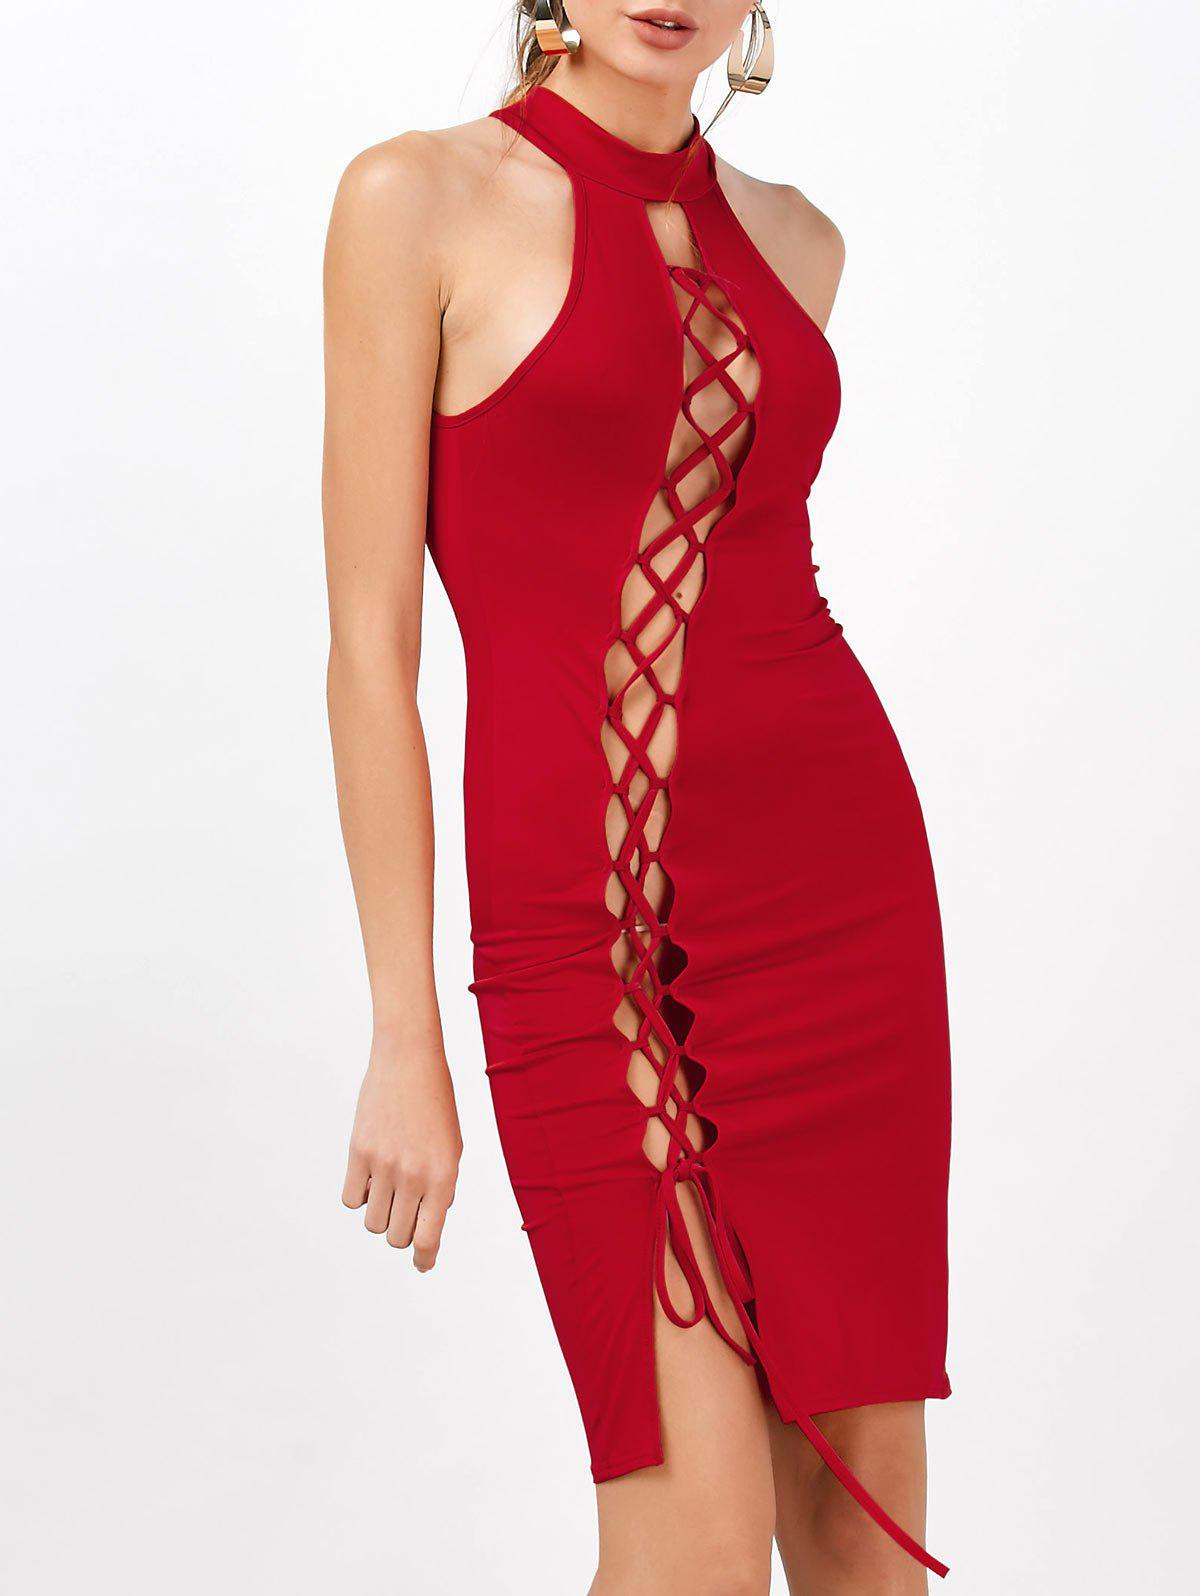 Criss Cross Backless Bodycon Club High Neck Hot DressWOMEN<br><br>Size: S; Color: RED; Style: Sexy &amp; Club; Material: Polyester; Silhouette: Sheath; Dresses Length: Knee-Length; Neckline: High Neck; Sleeve Length: Sleeveless; Waist: Natural; Embellishment: Criss-Cross; Pattern Type: Solid Color; With Belt: No; Season: Summer; Weight: 0.2200kg; Package Contents: 1 x Dress; Occasion: Club,Night Out,Party;